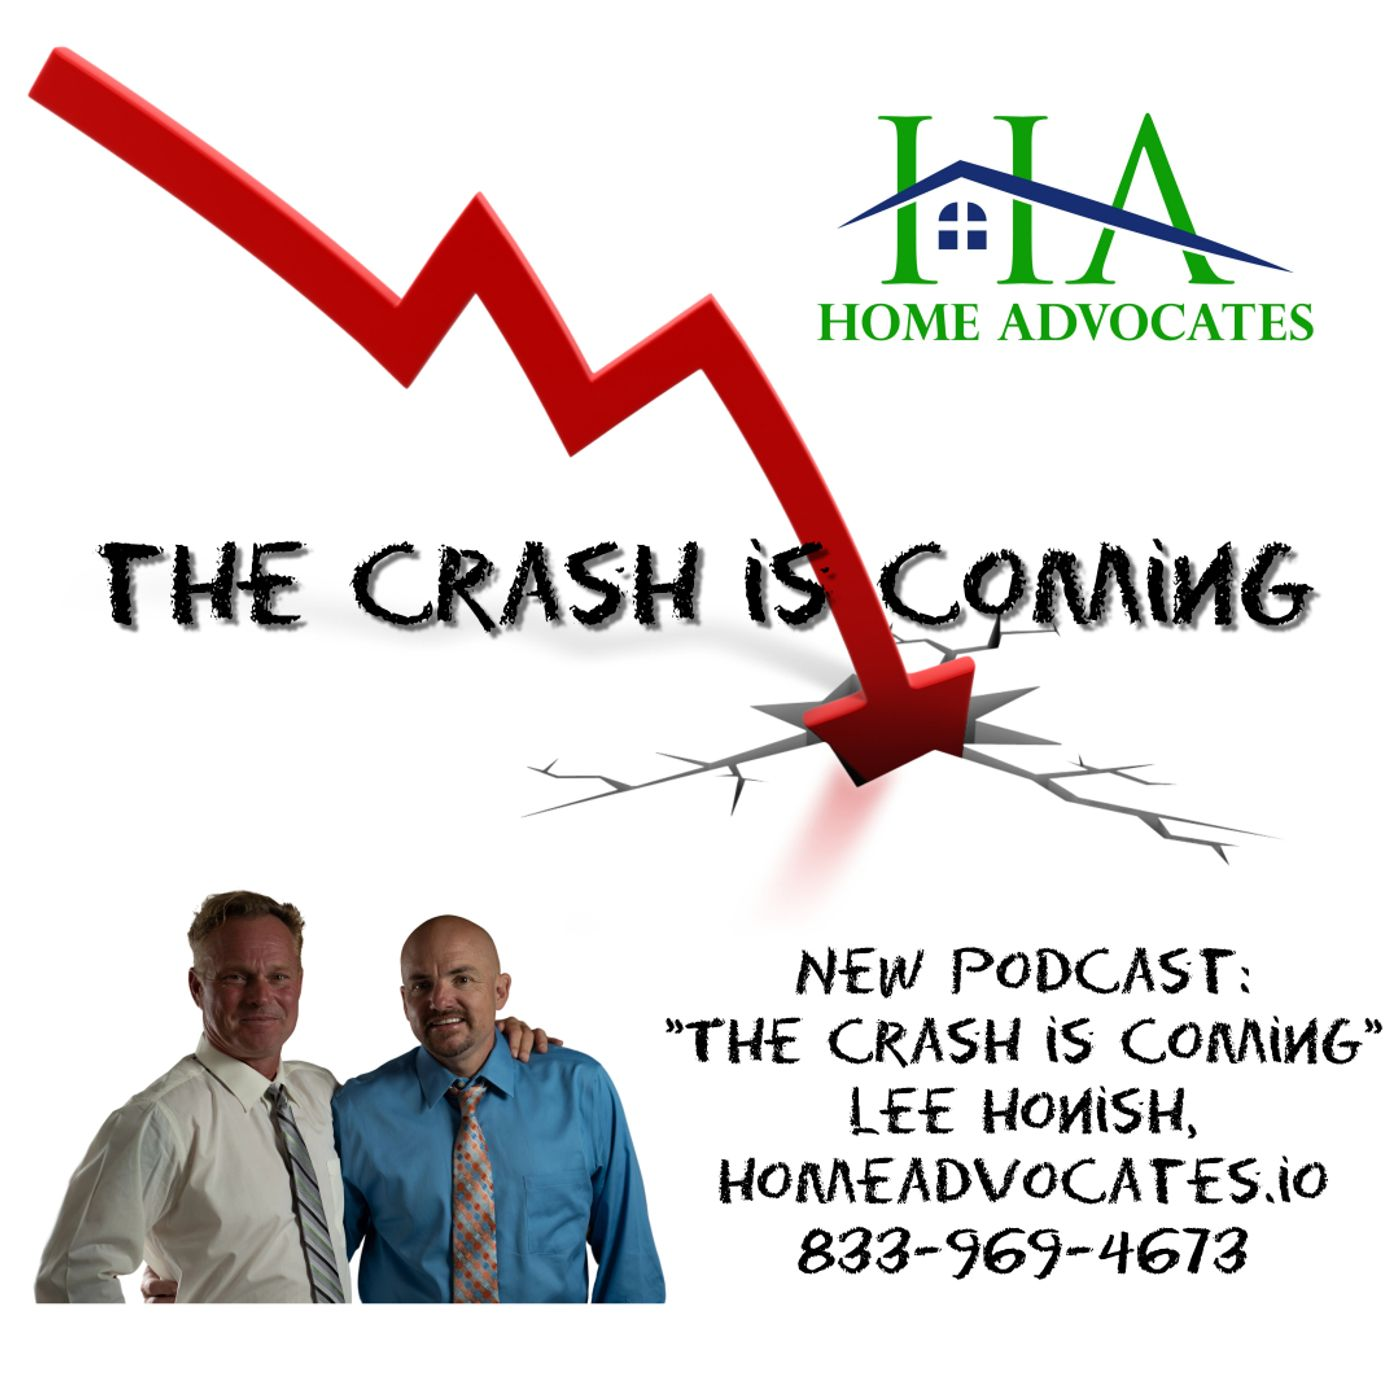 The Crash is coming | Lee Honish | Home Advocates | 833-969-4673